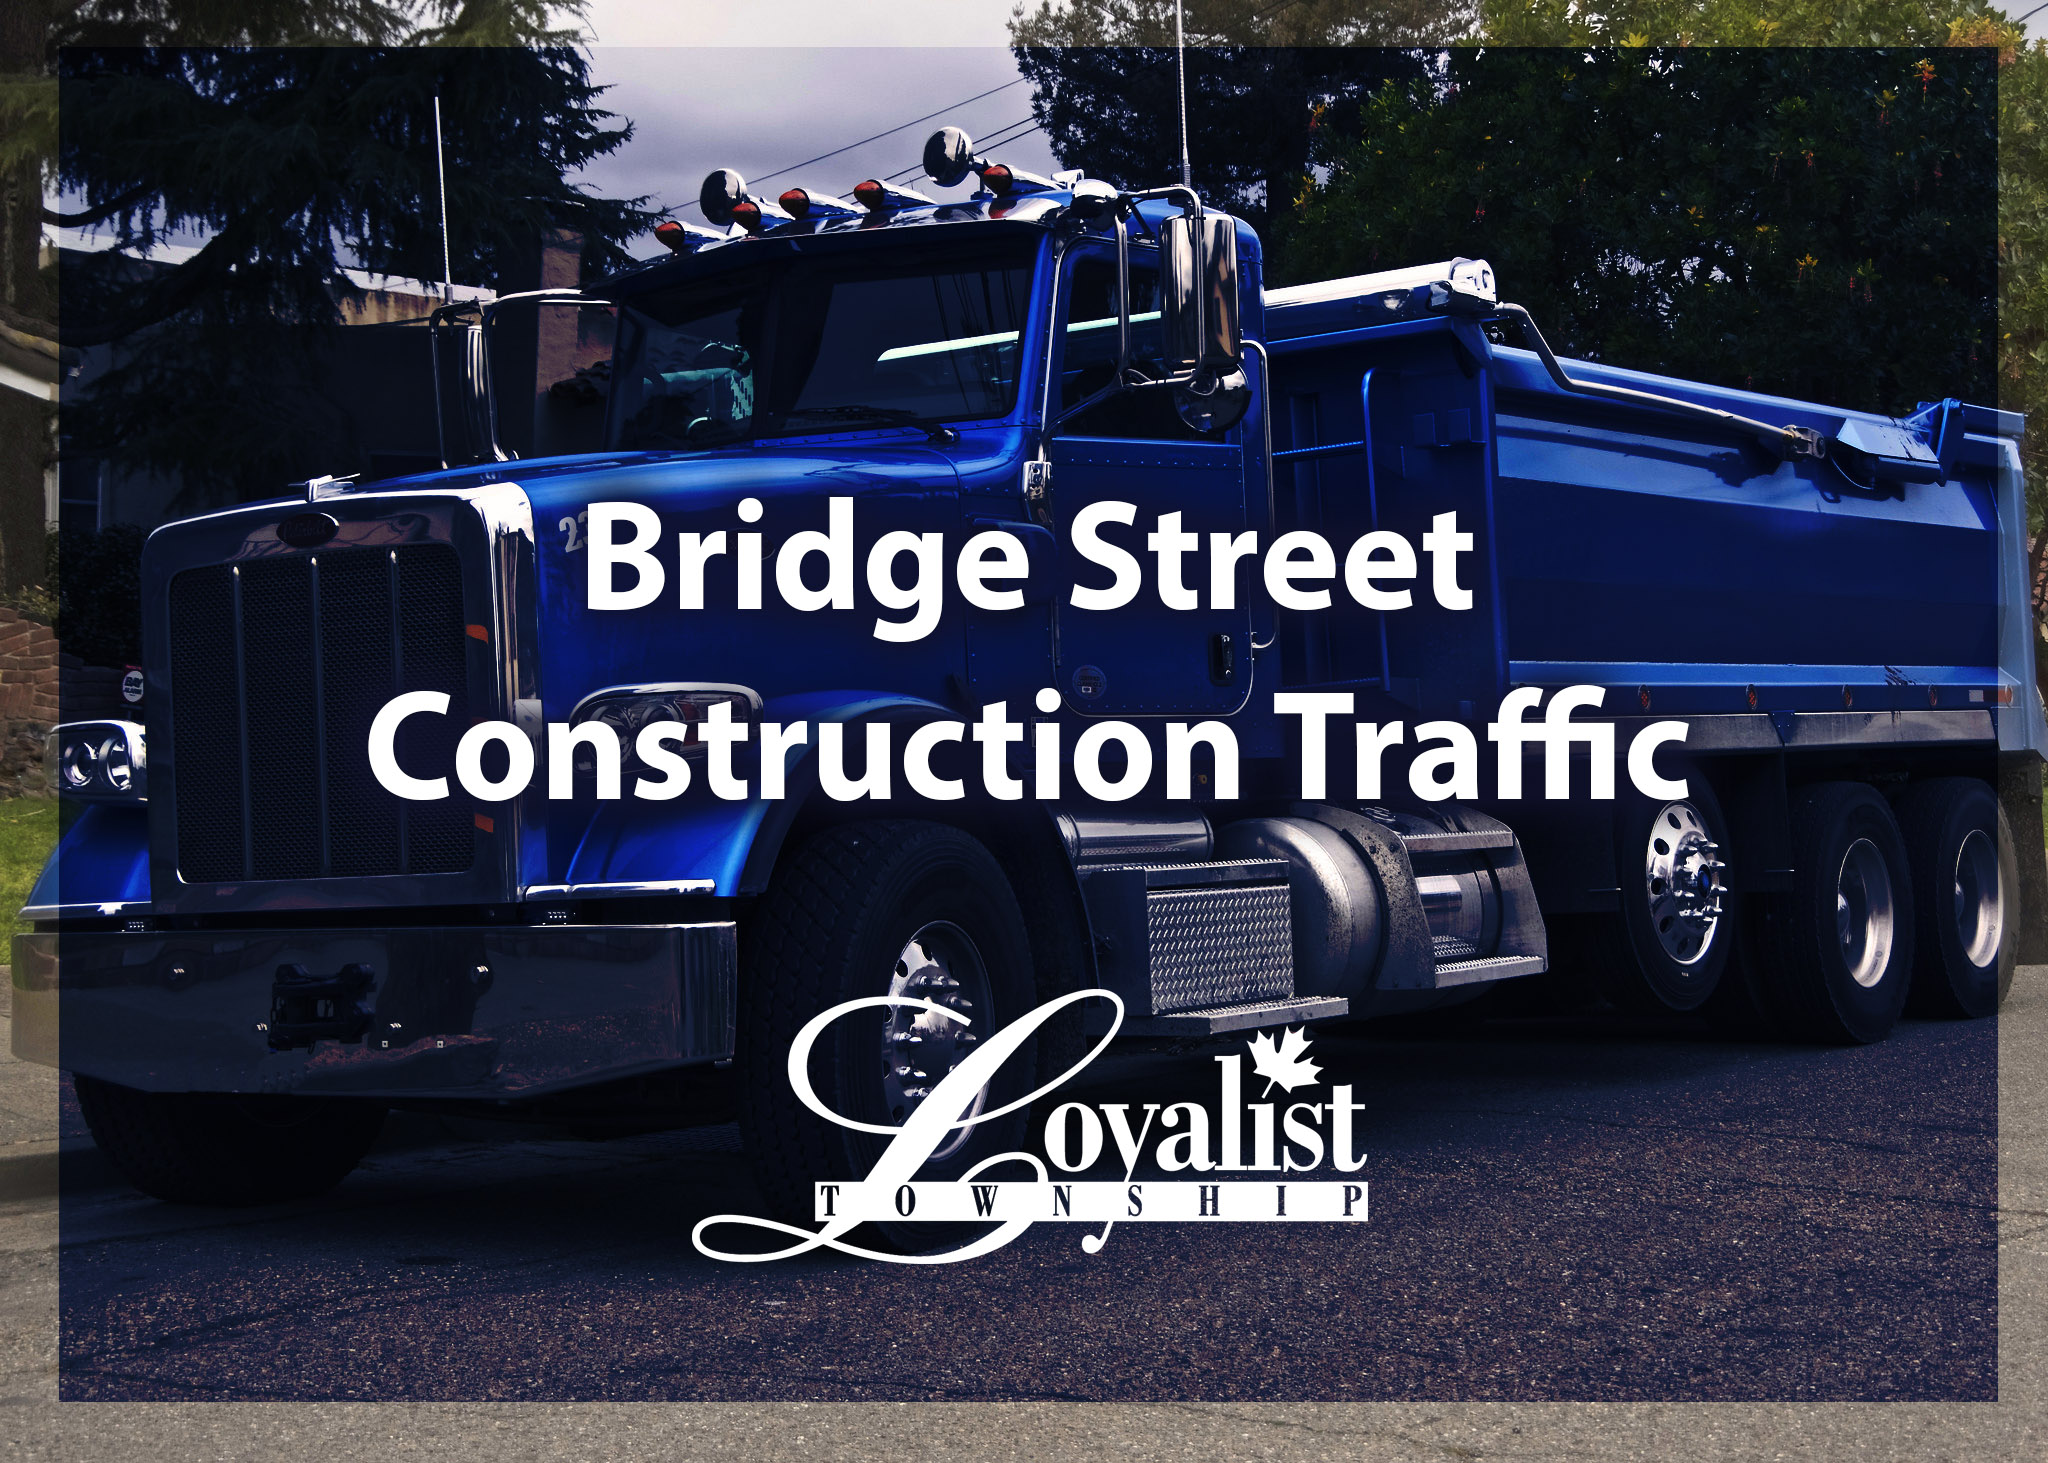 Photo of a Dump Truck with overlay text Bridge Street Construction Traffic and a Loyalist Township logo